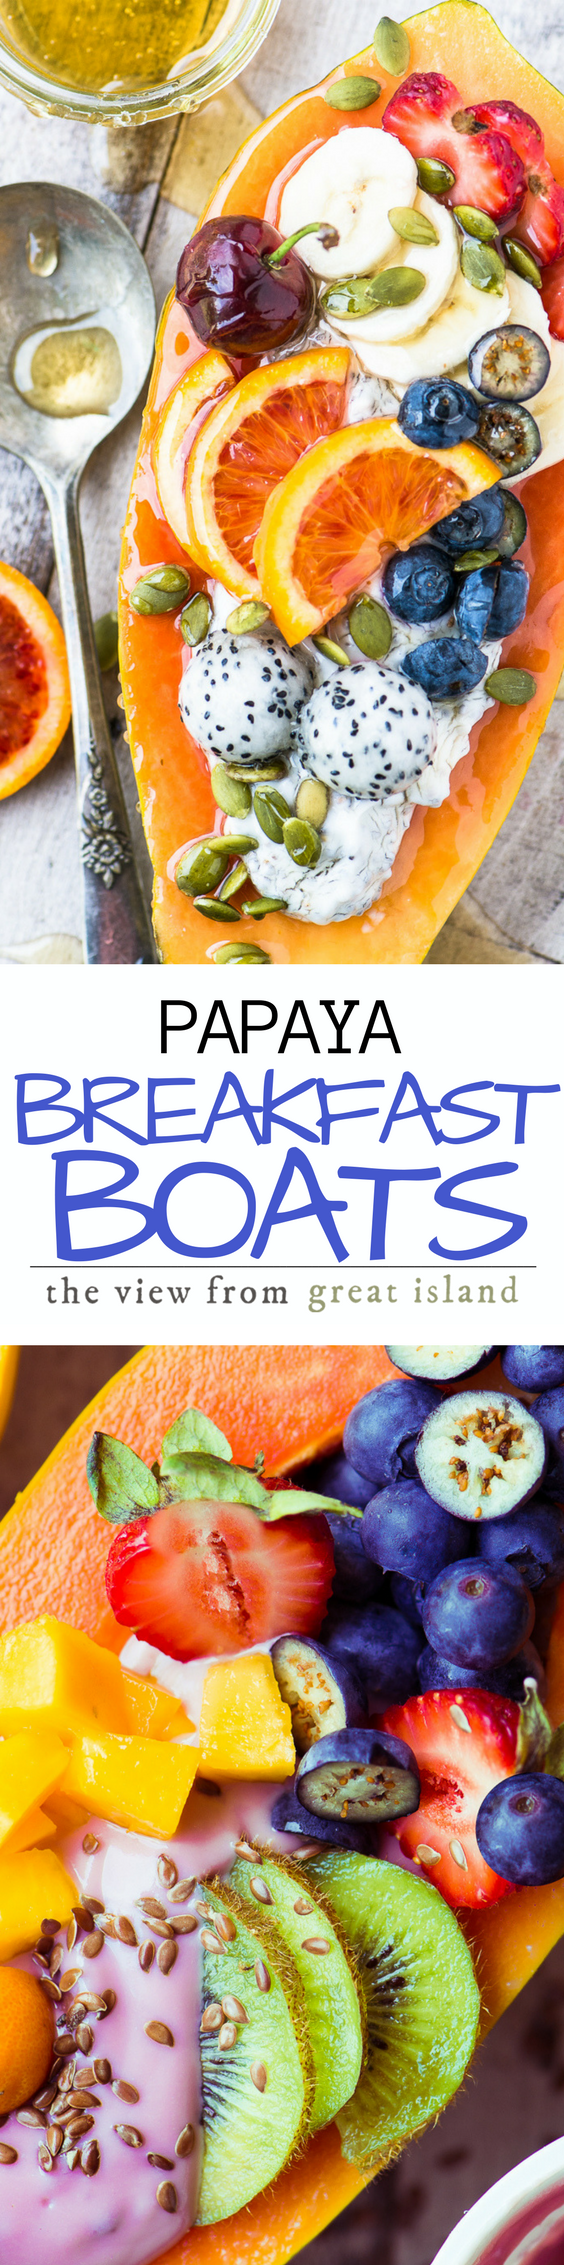 Papaya Breakfast Boats ~ oh my, breakfast just got a whole lot more interesting, with gorgeous tropical papaya halved and filled with non dairy yogurt and fresh juicy fruit. | yogurt | non-dairy yogurt | plant based food | gluten free | vegan | brunch | tropical fruit |